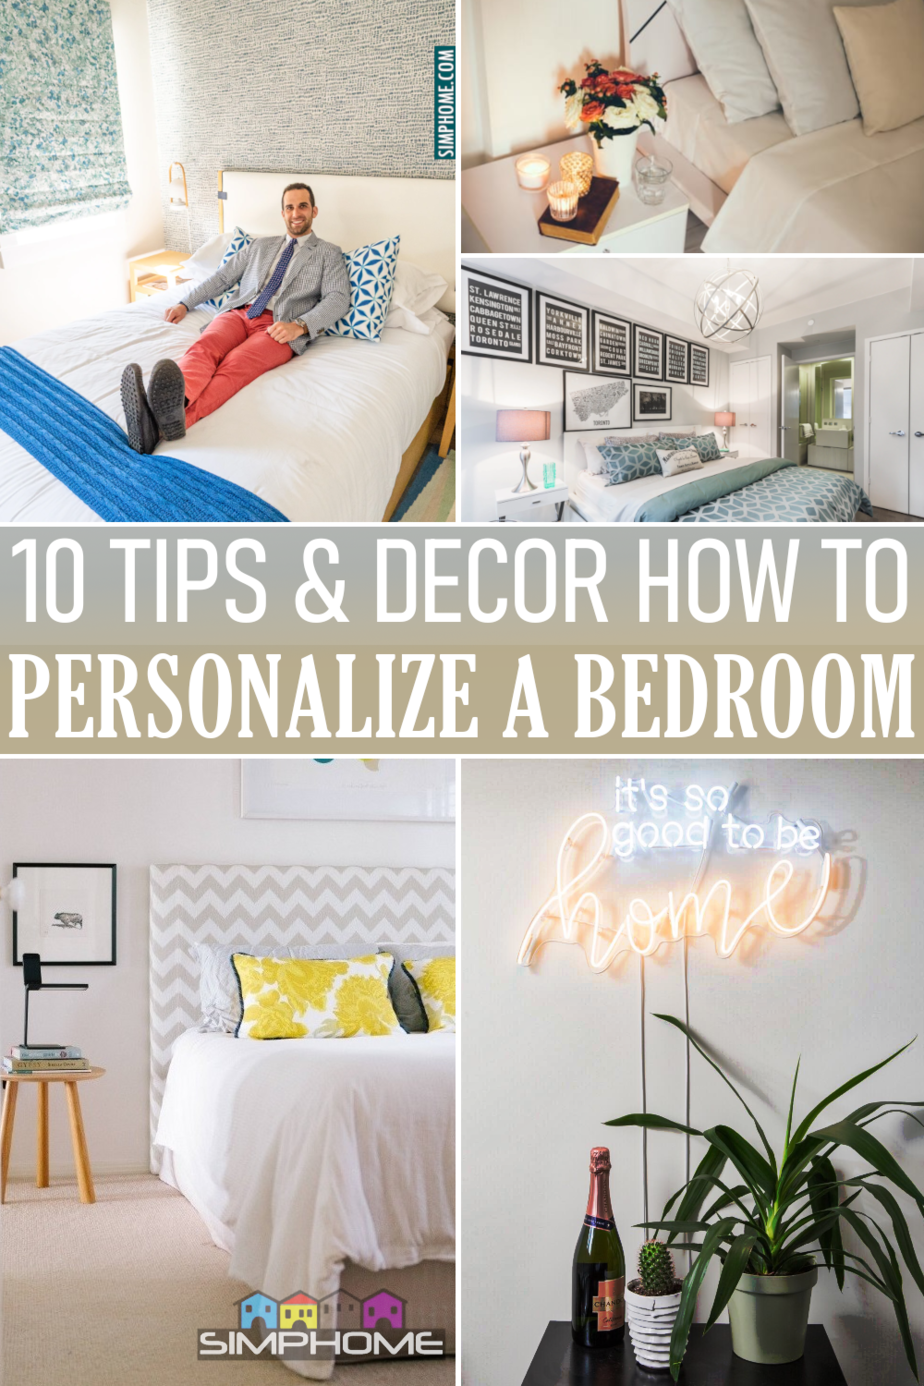 10 Ideas how to personalize bedroom via Simphome.comFeatured